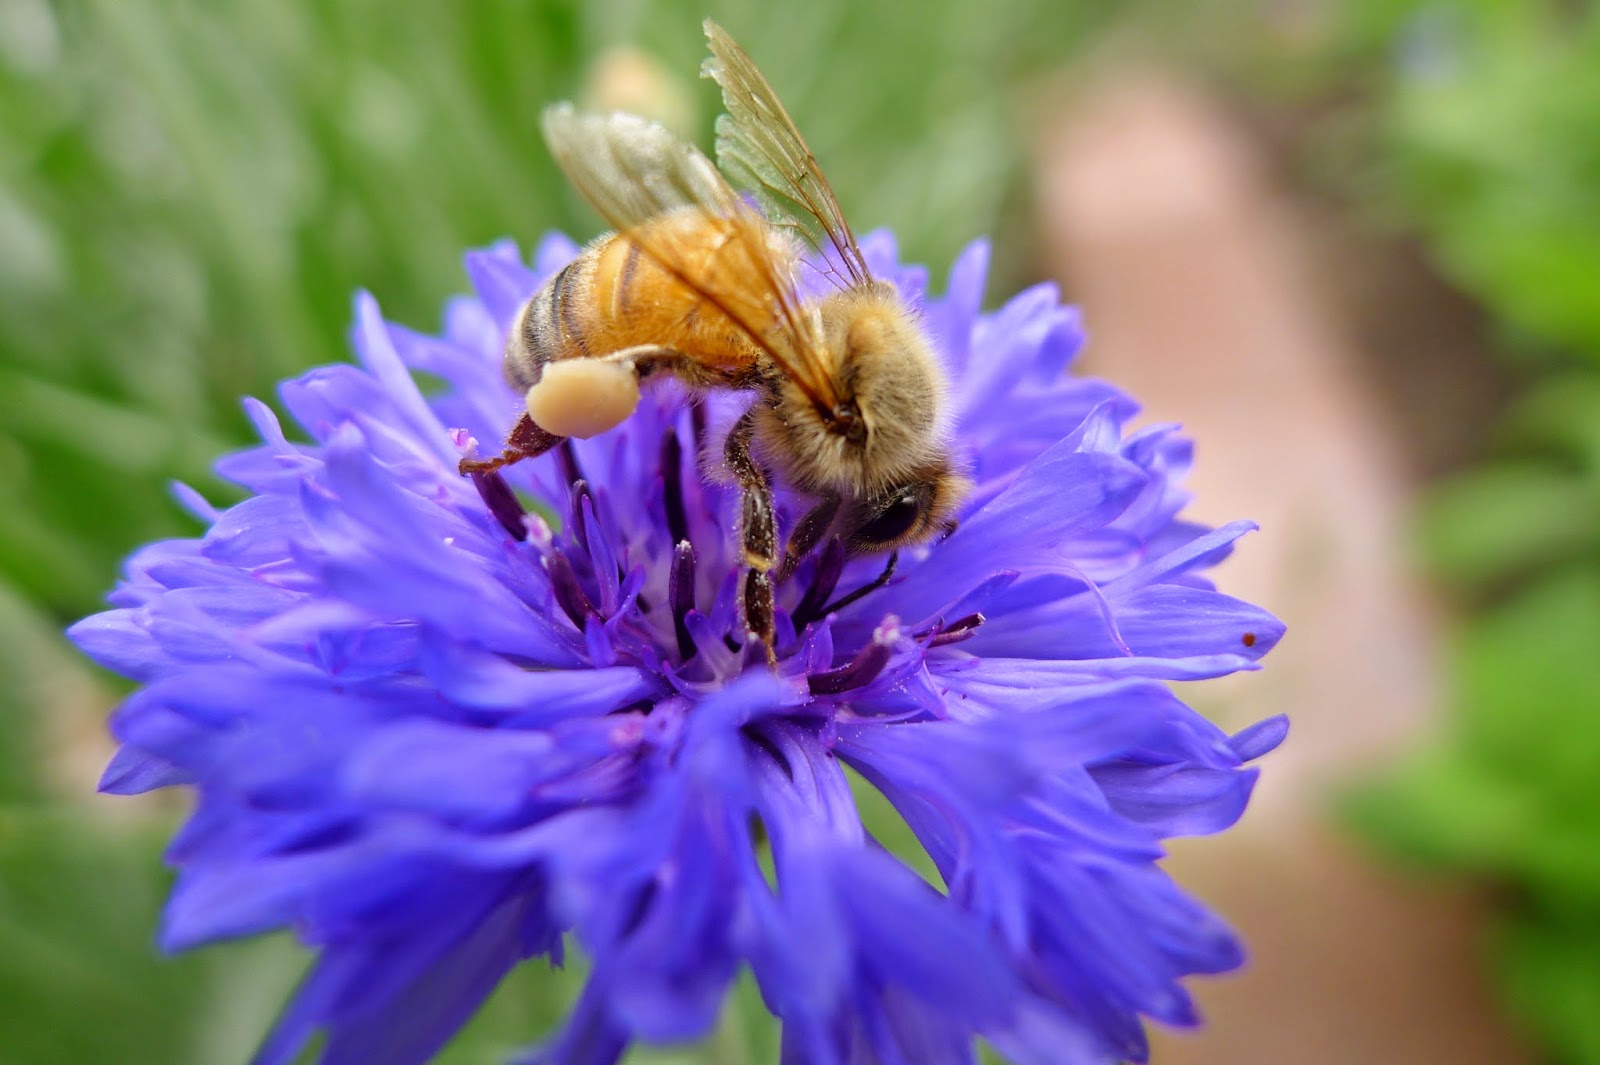 Honey Bee, bees, pollinators, urban farming